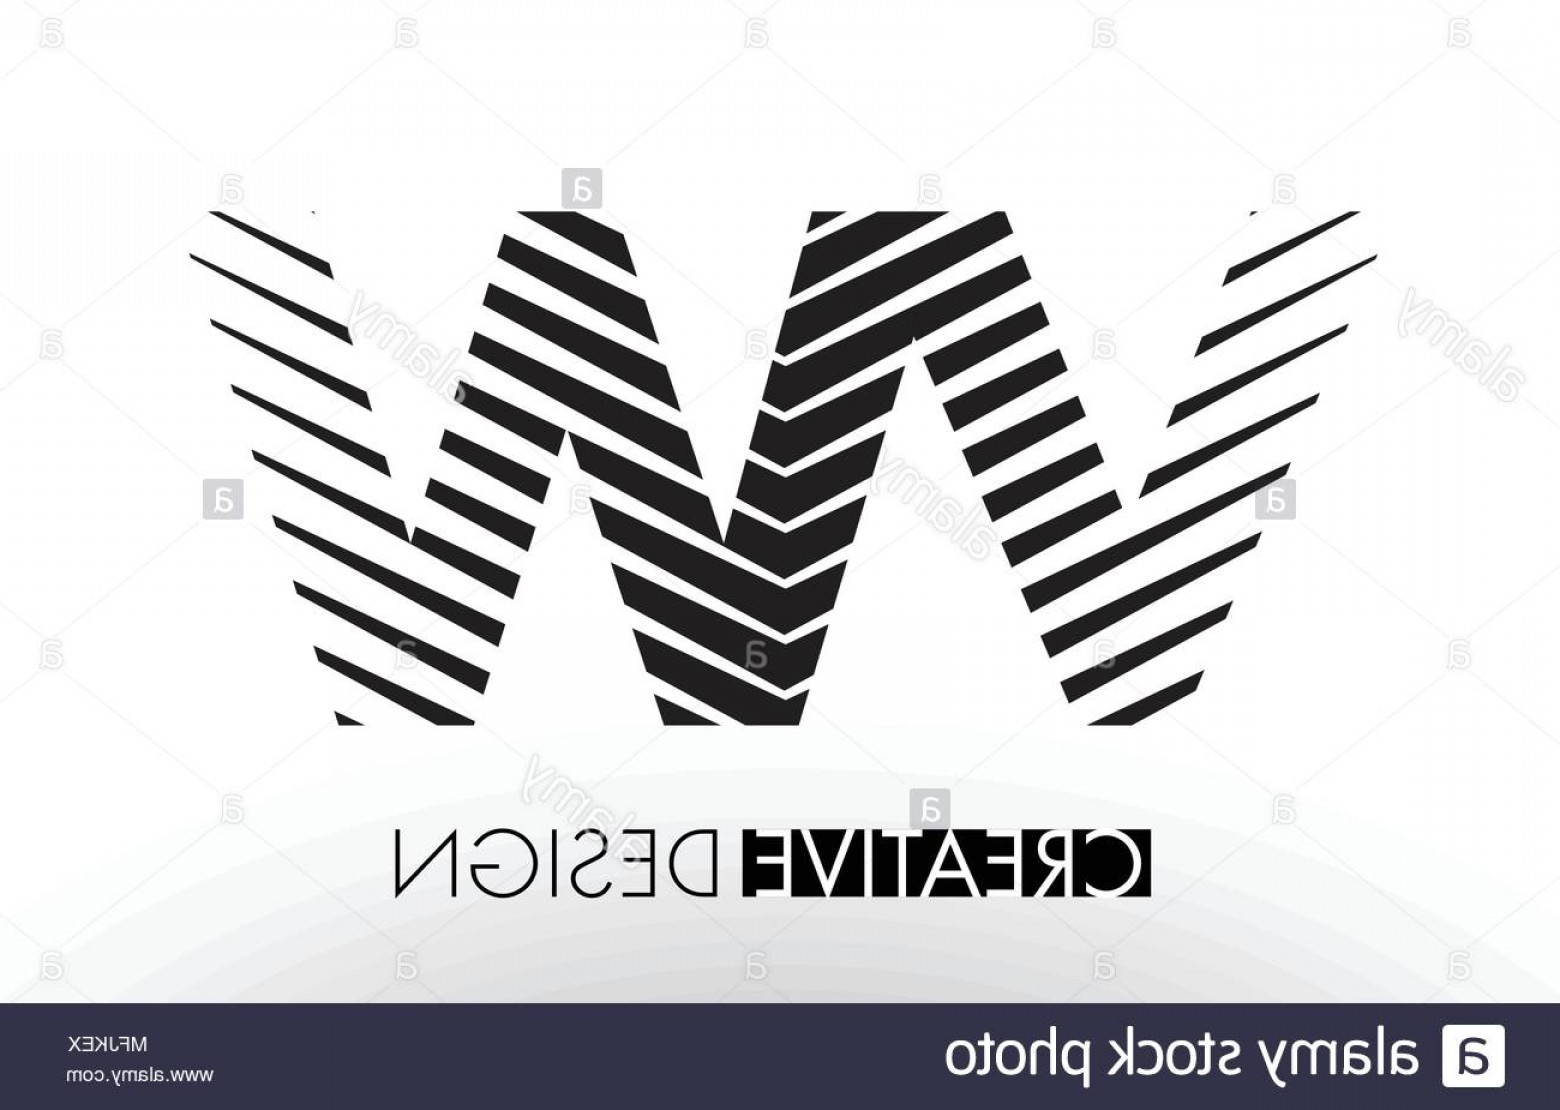 VW Vector Graphic: Vw V W Lines Letter Design With Creative Elegant Zebra Vector Illustration Image